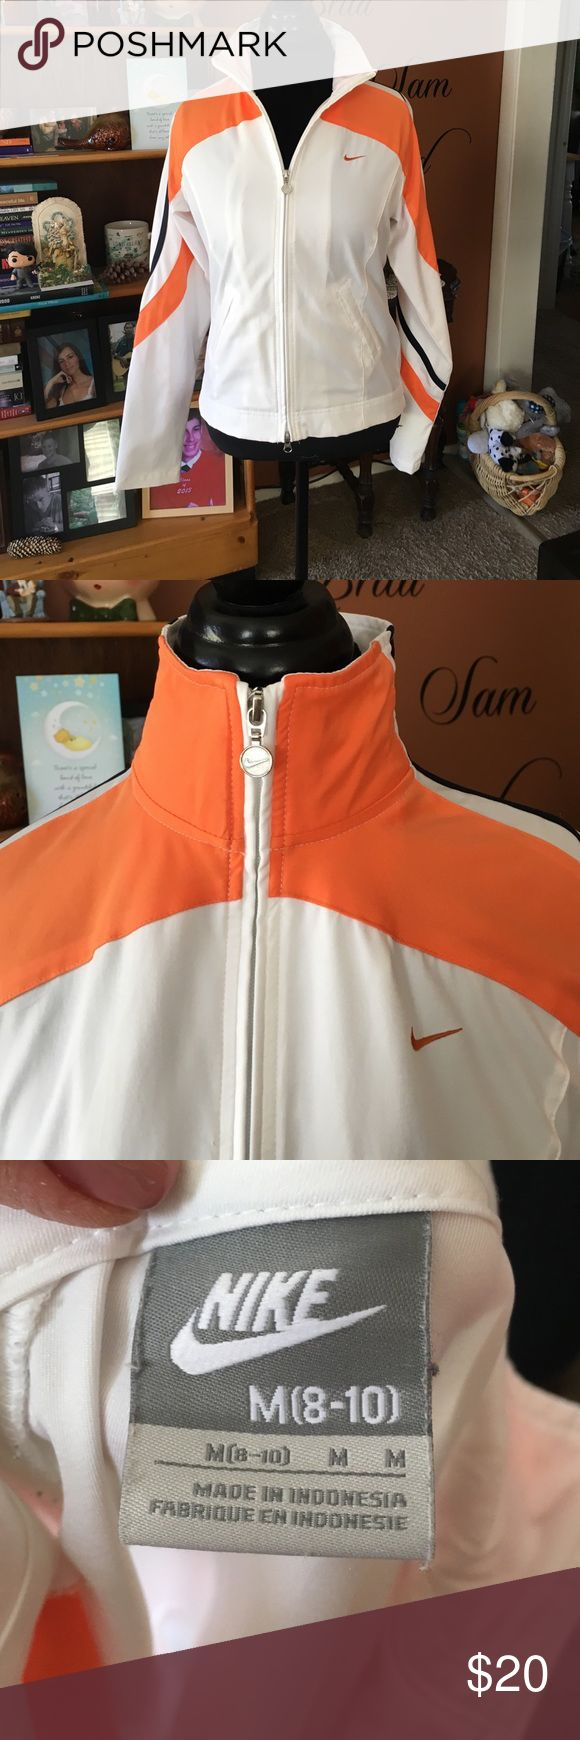 Nike Womens Zip Up Lightweight Jacket EUC, worn once. Jacket is lightweight, not lined. White with orange and black trim. Nike Jackets & Coats